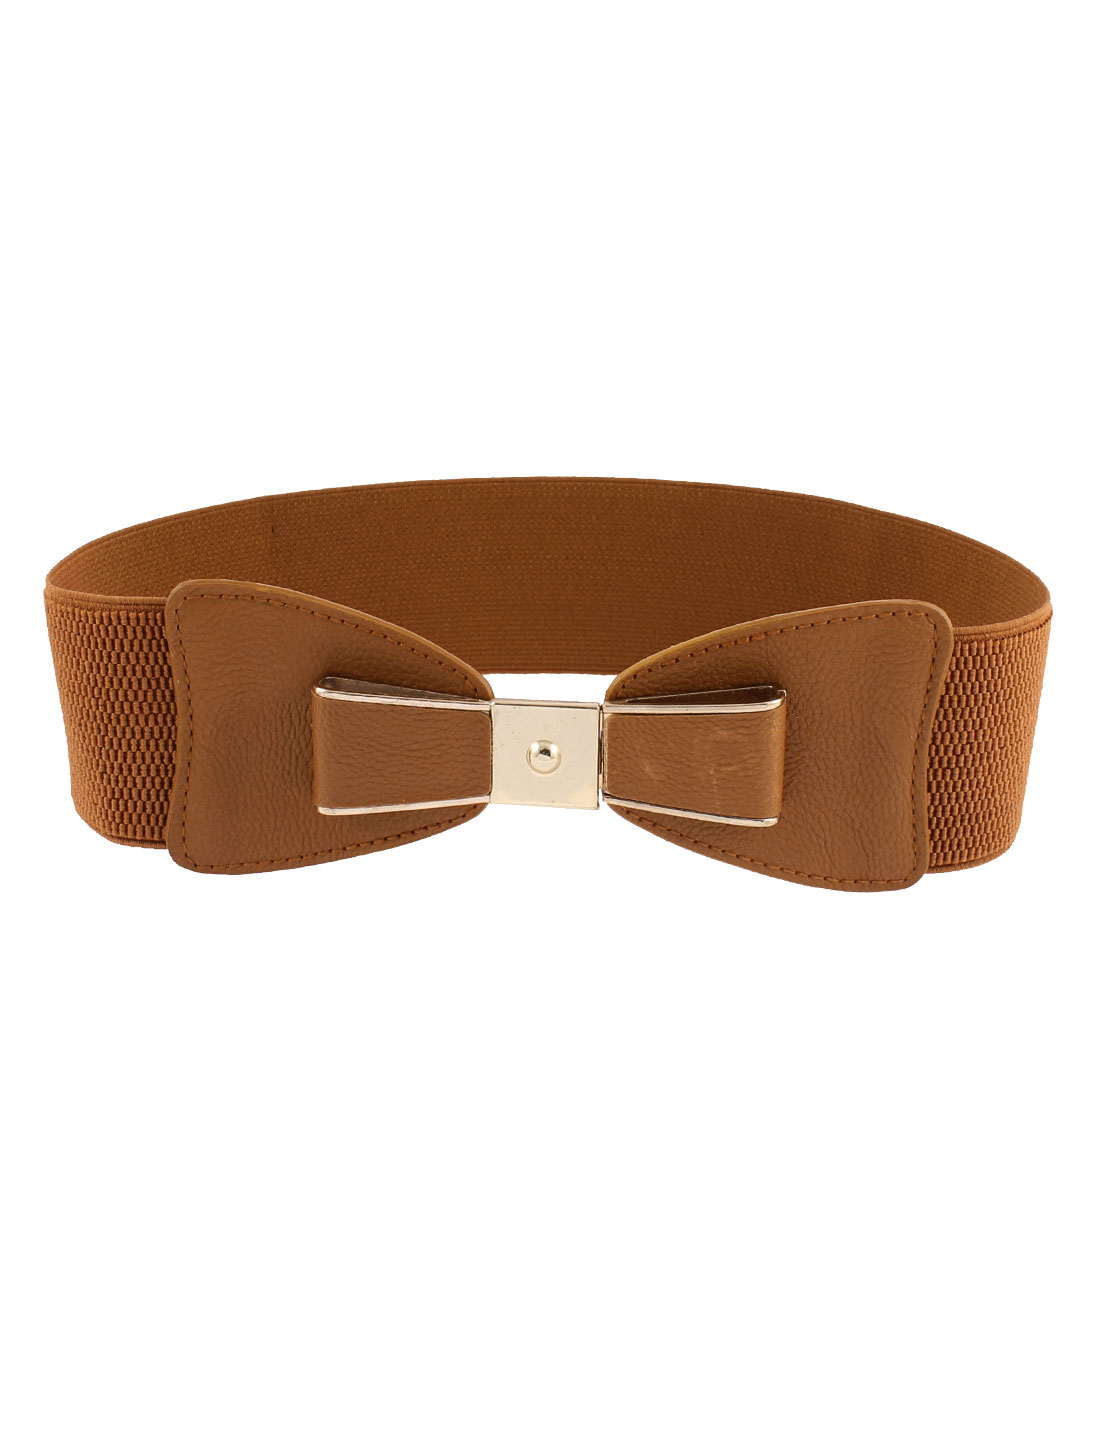 Lady Bowknot Design Interlocking Buckle Elastic Waist Belt Camel Color